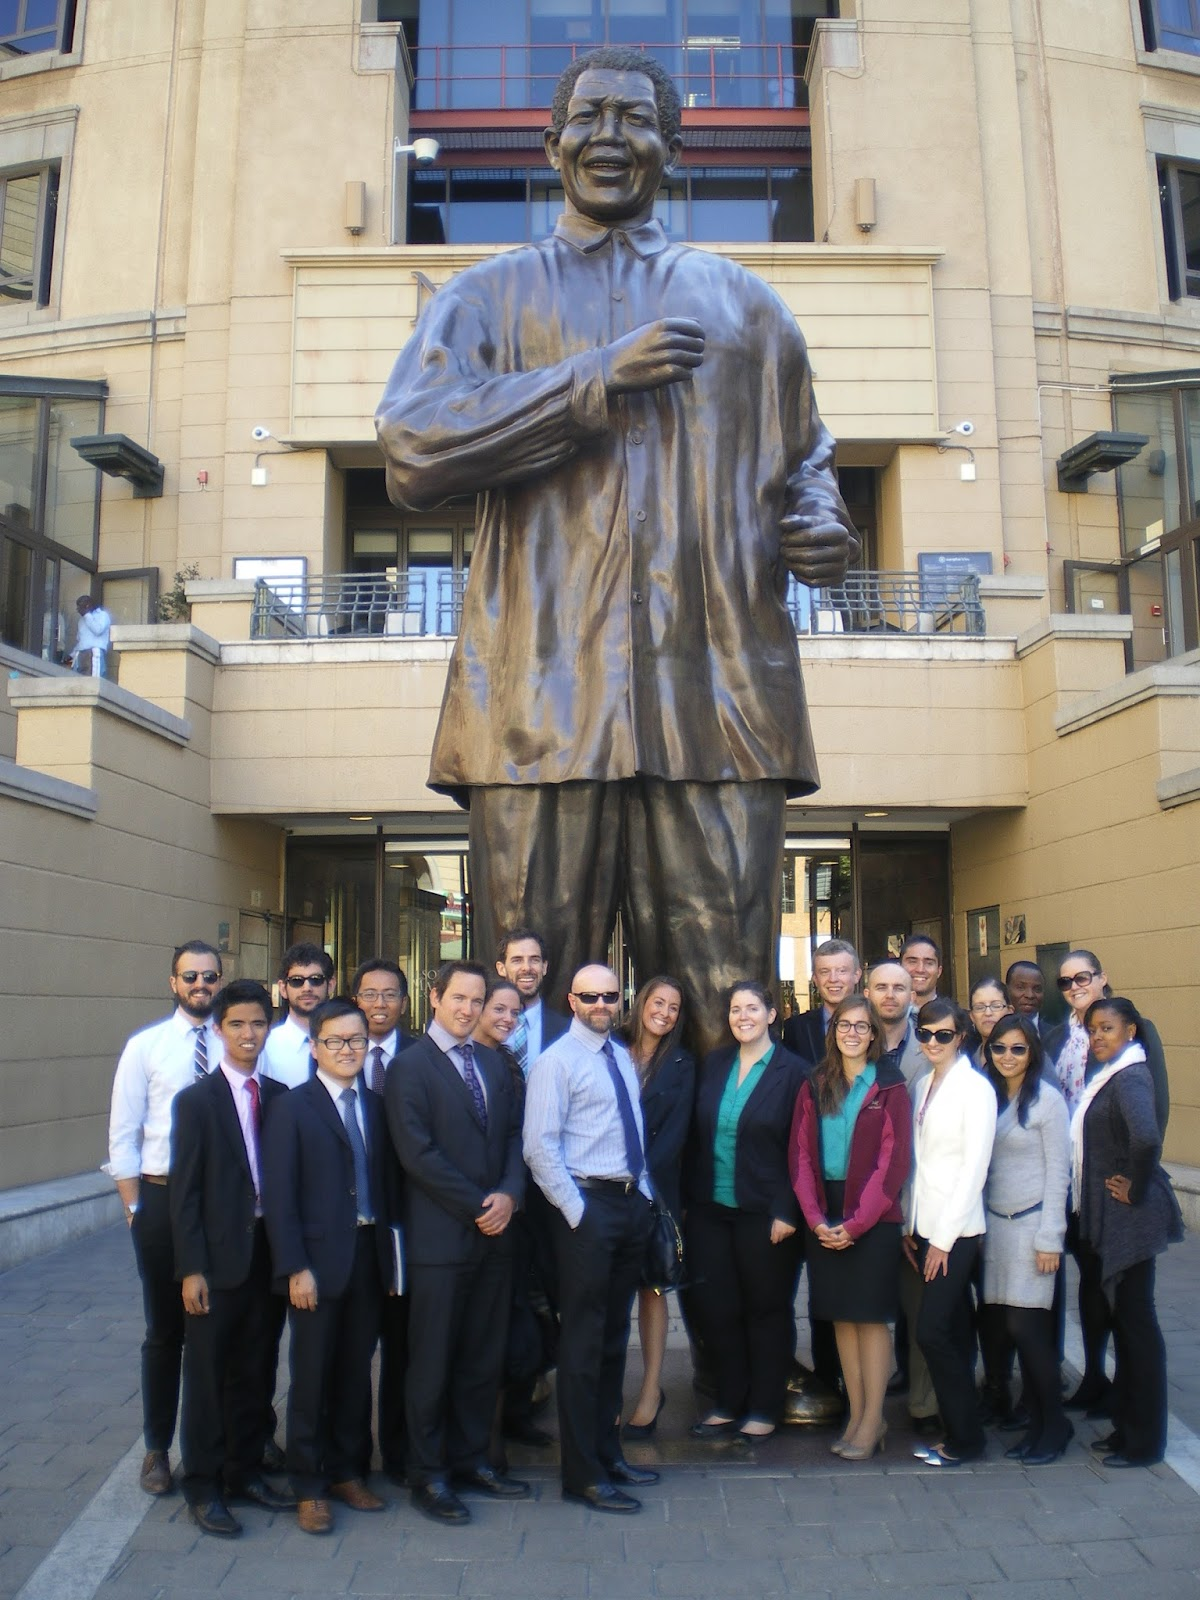 Fordham Iped Students Gather In Mandela Square After Visiting The  Johannesburg Stock Exchange Photo By Henry Schwalbenberg